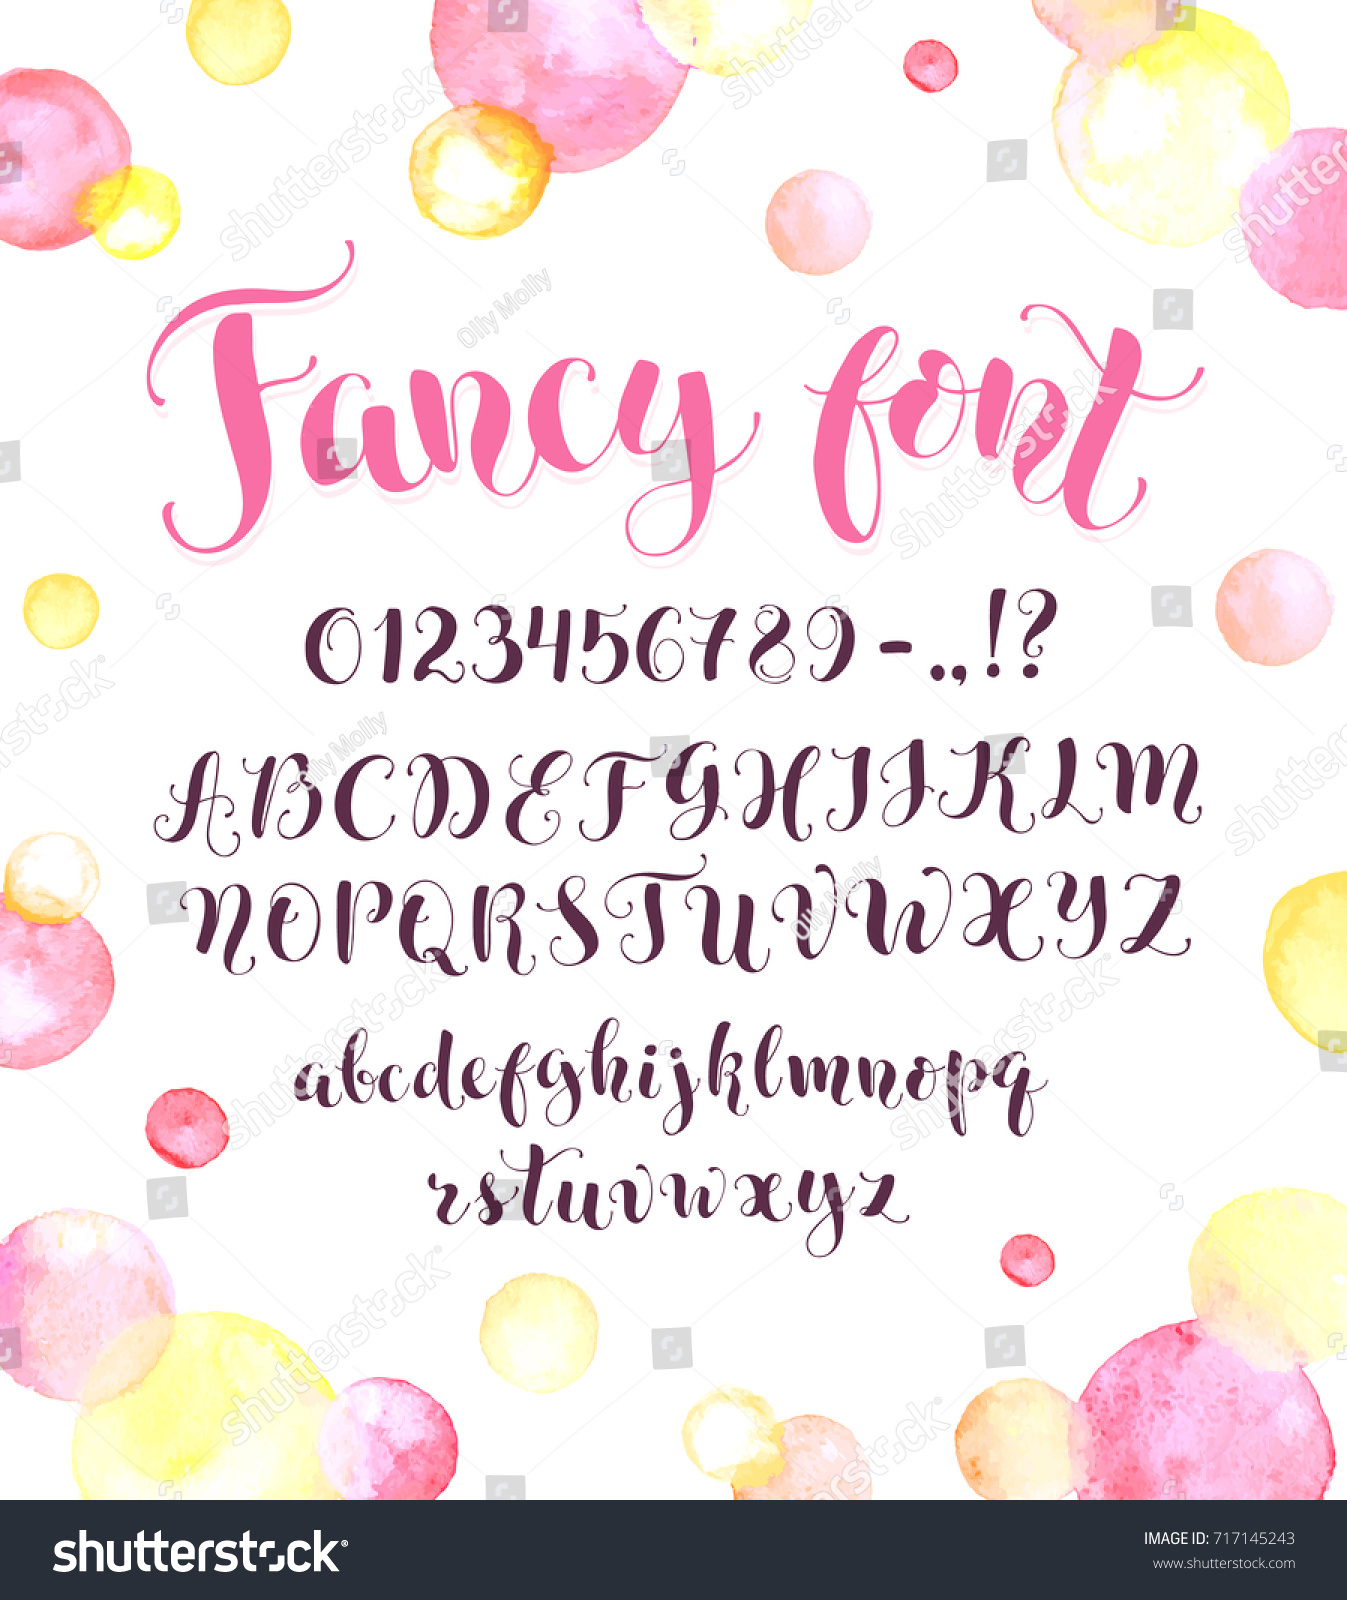 Fancy Calligraphy Font Watercolor Spots Isolated Stock Vector